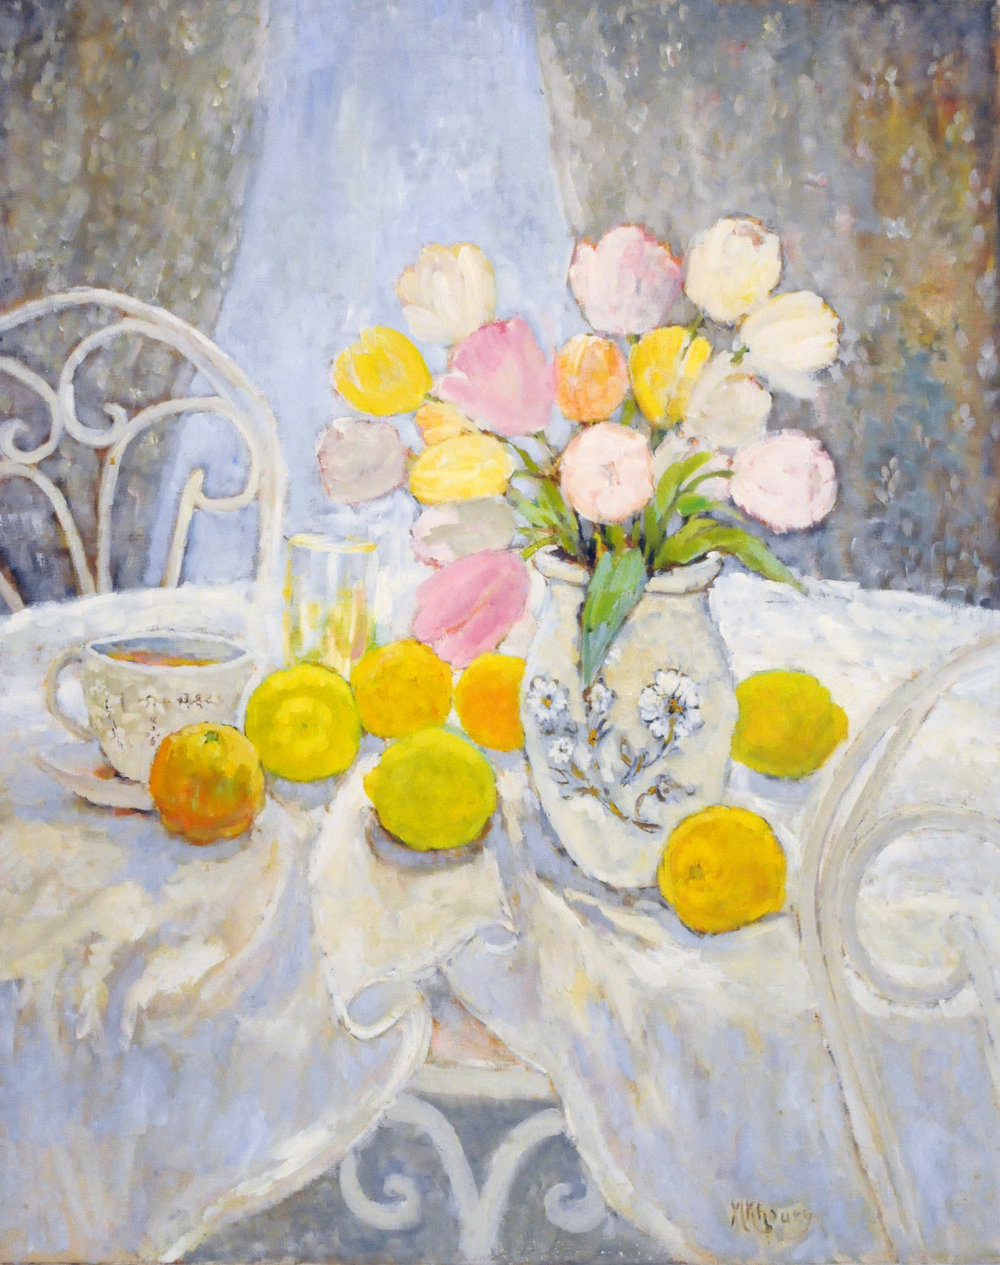 Still life with tulips & citrus, Michael Khoury